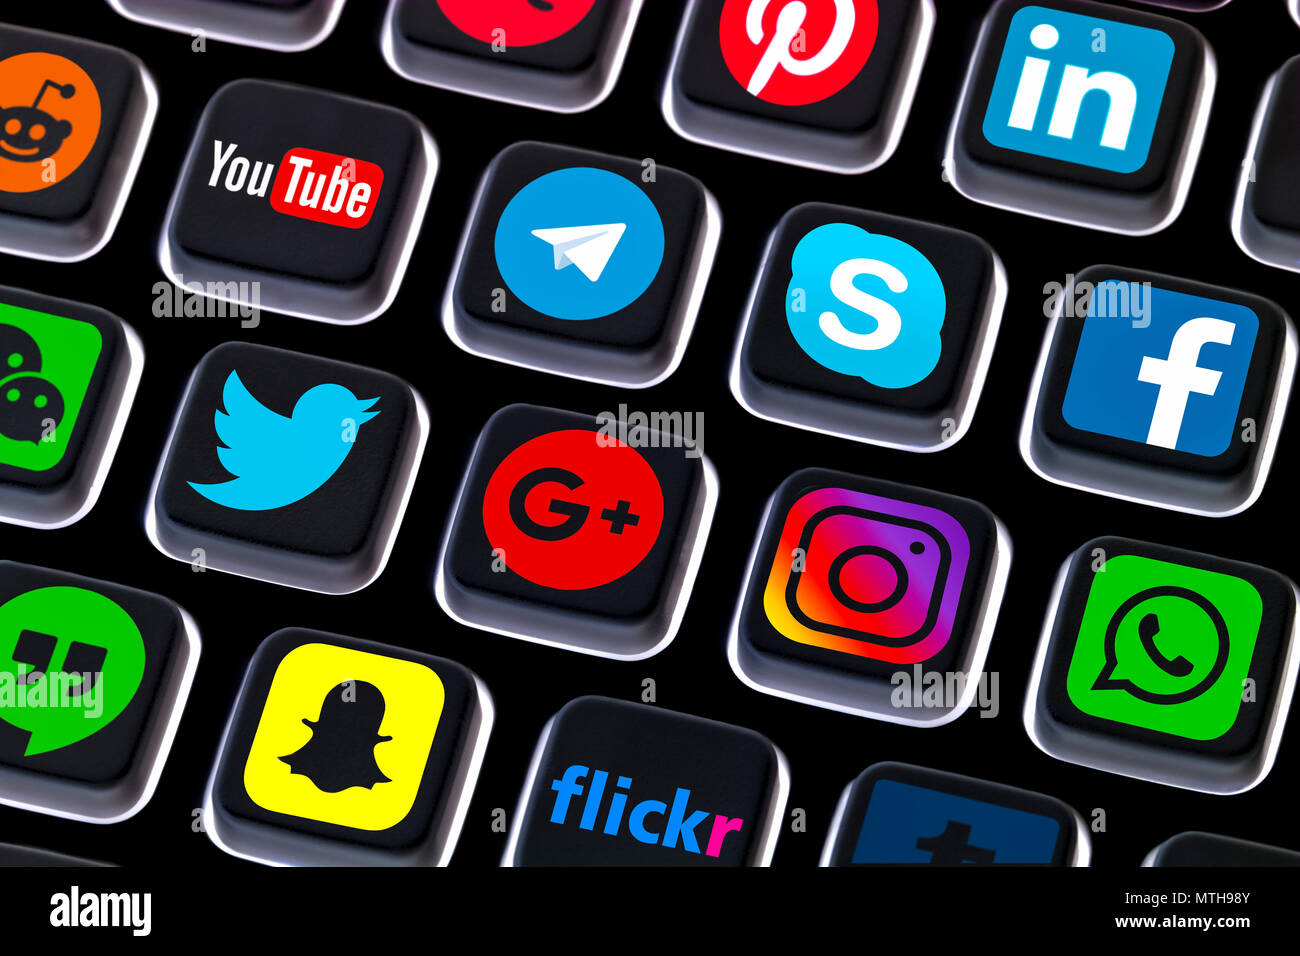 Social media icons on a computer keyboard. Social networking shortcuts. Social network services. Internet social media buttons. - Stock Image